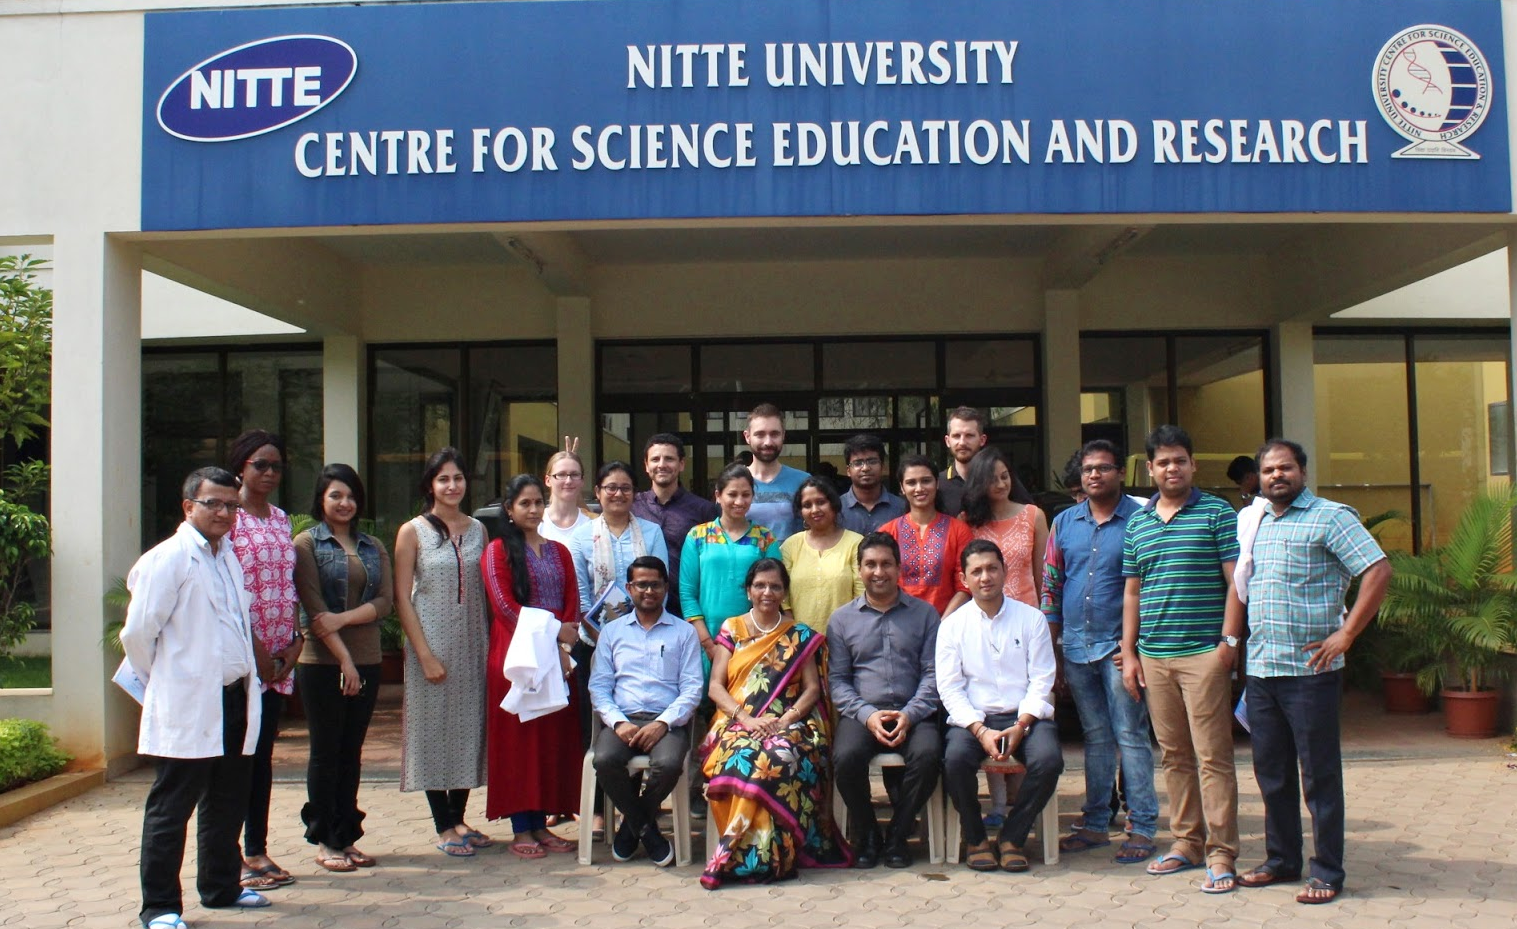 Nitte University Centre for Science Education and Research, Mangaluru